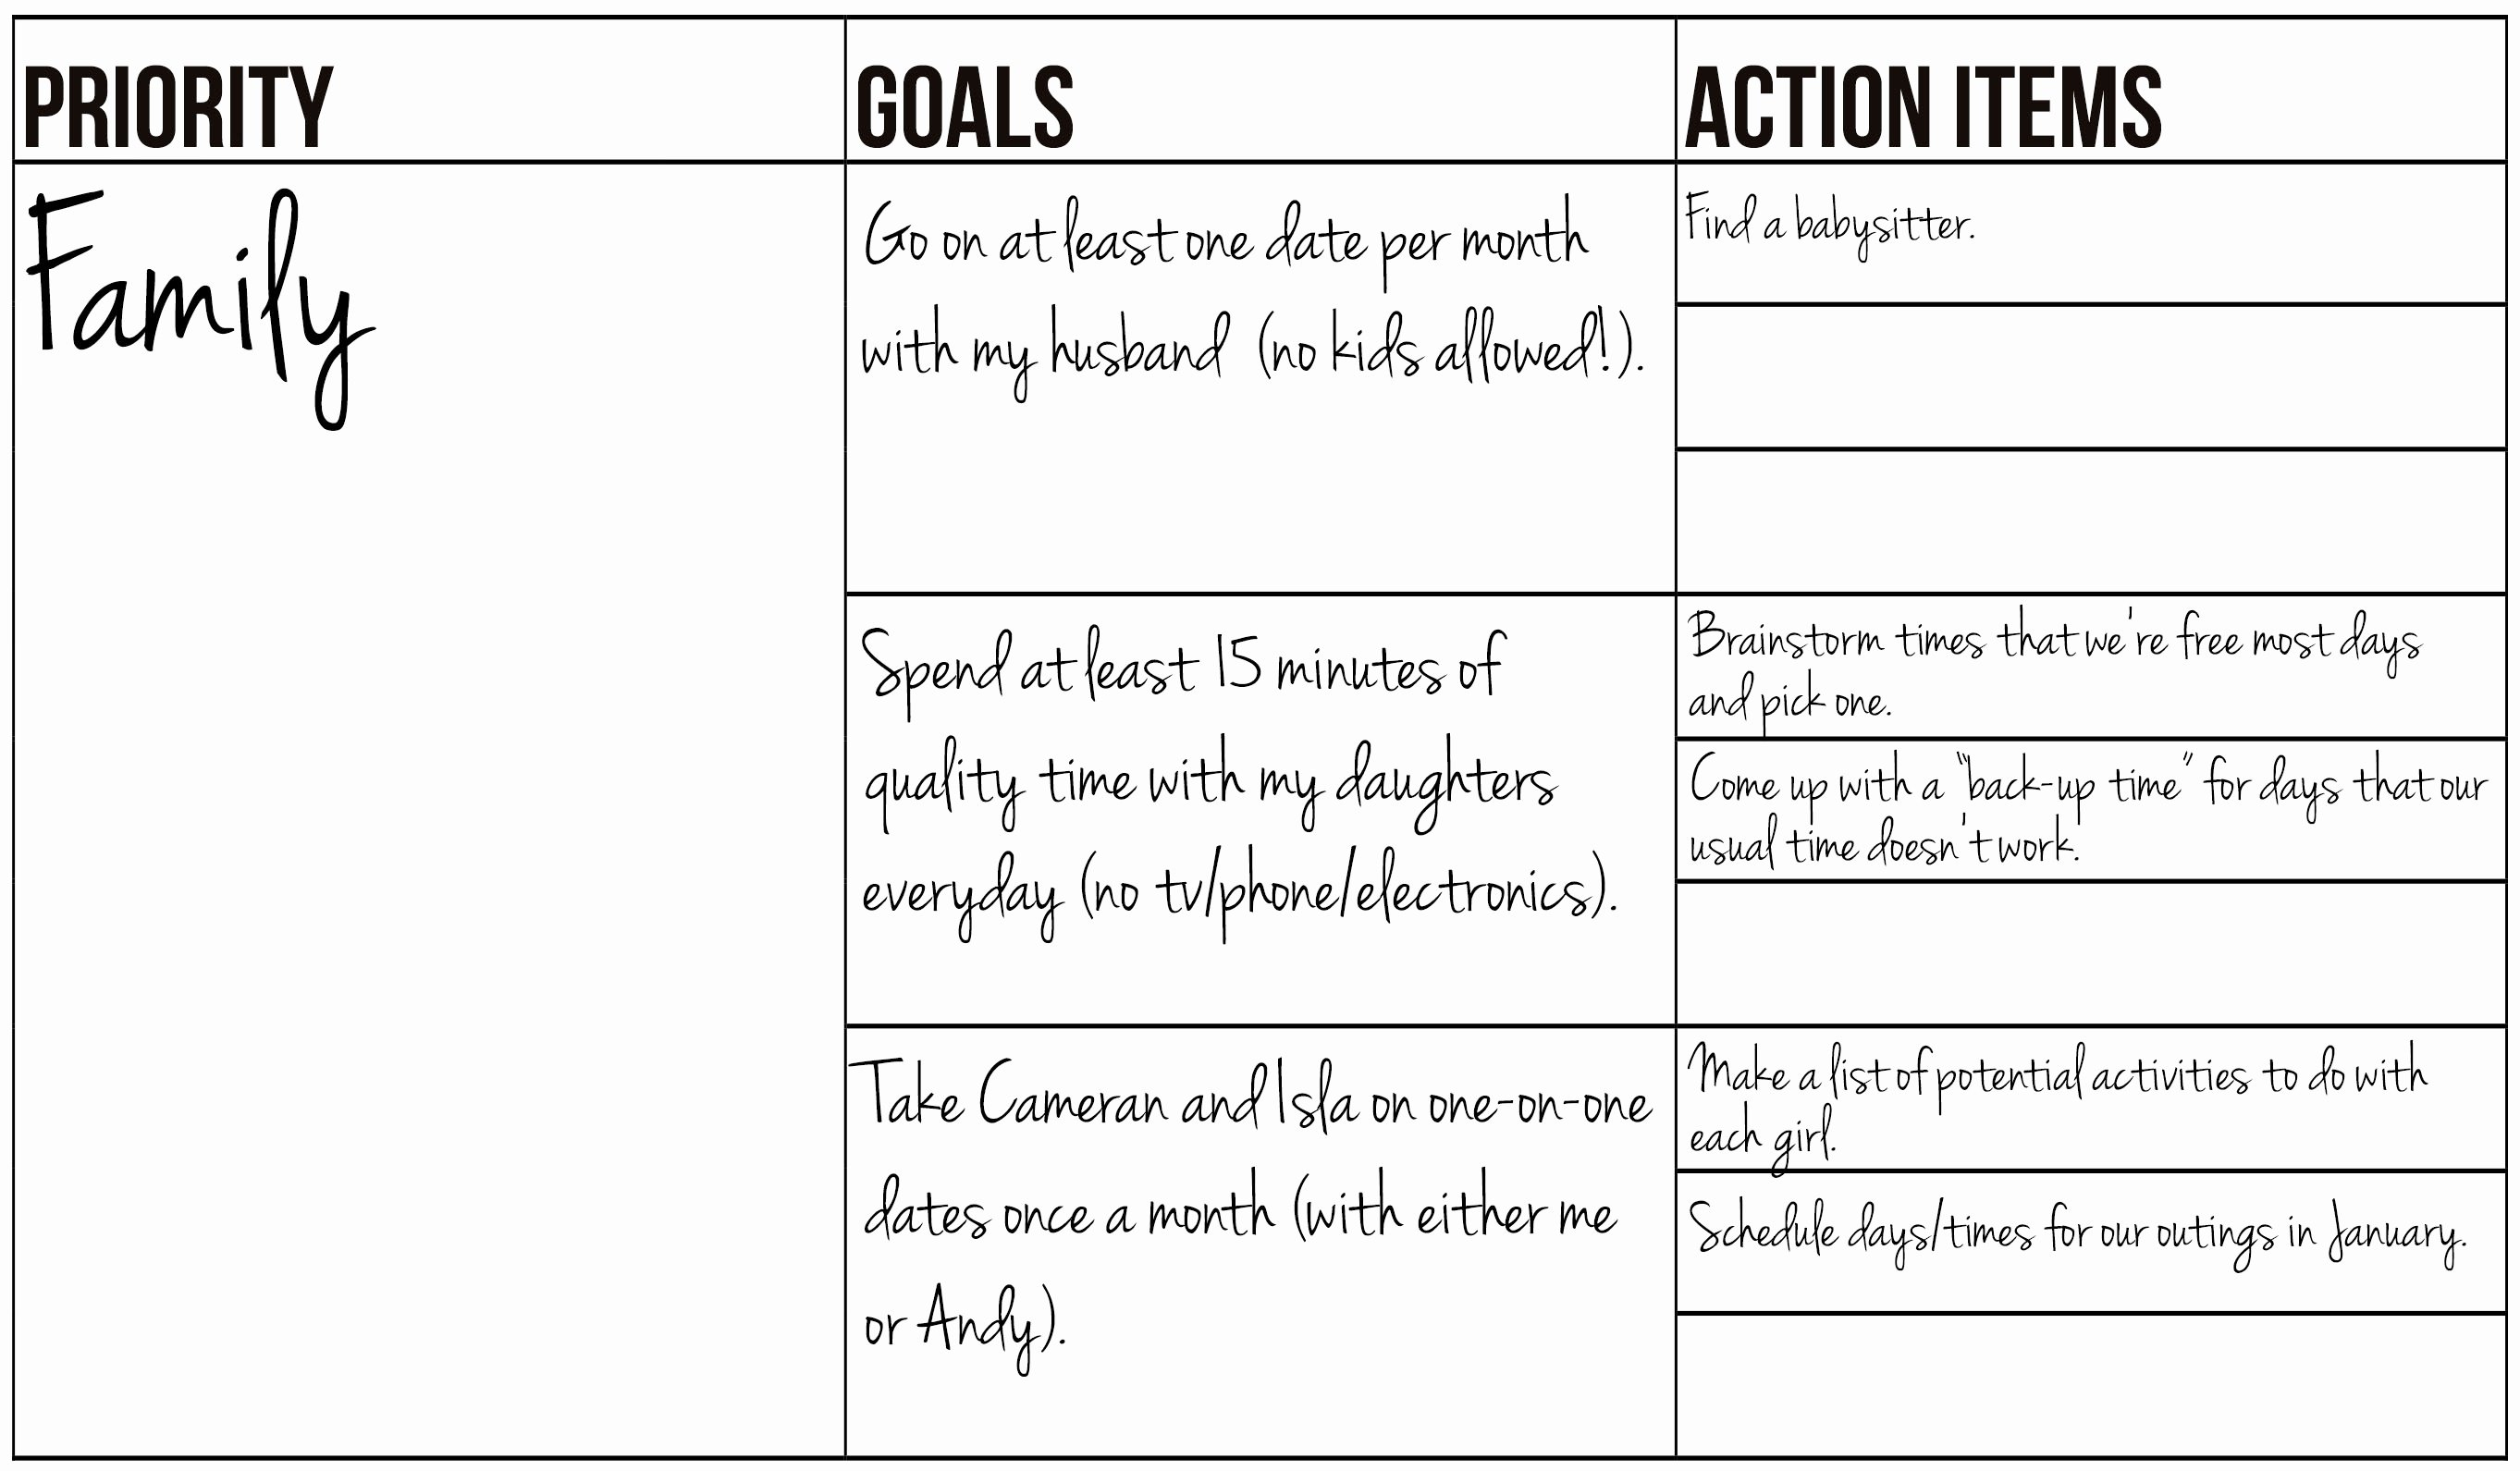 Goal Setting Worksheet Template New Free Printable Goal Setting Worksheet and Instructions